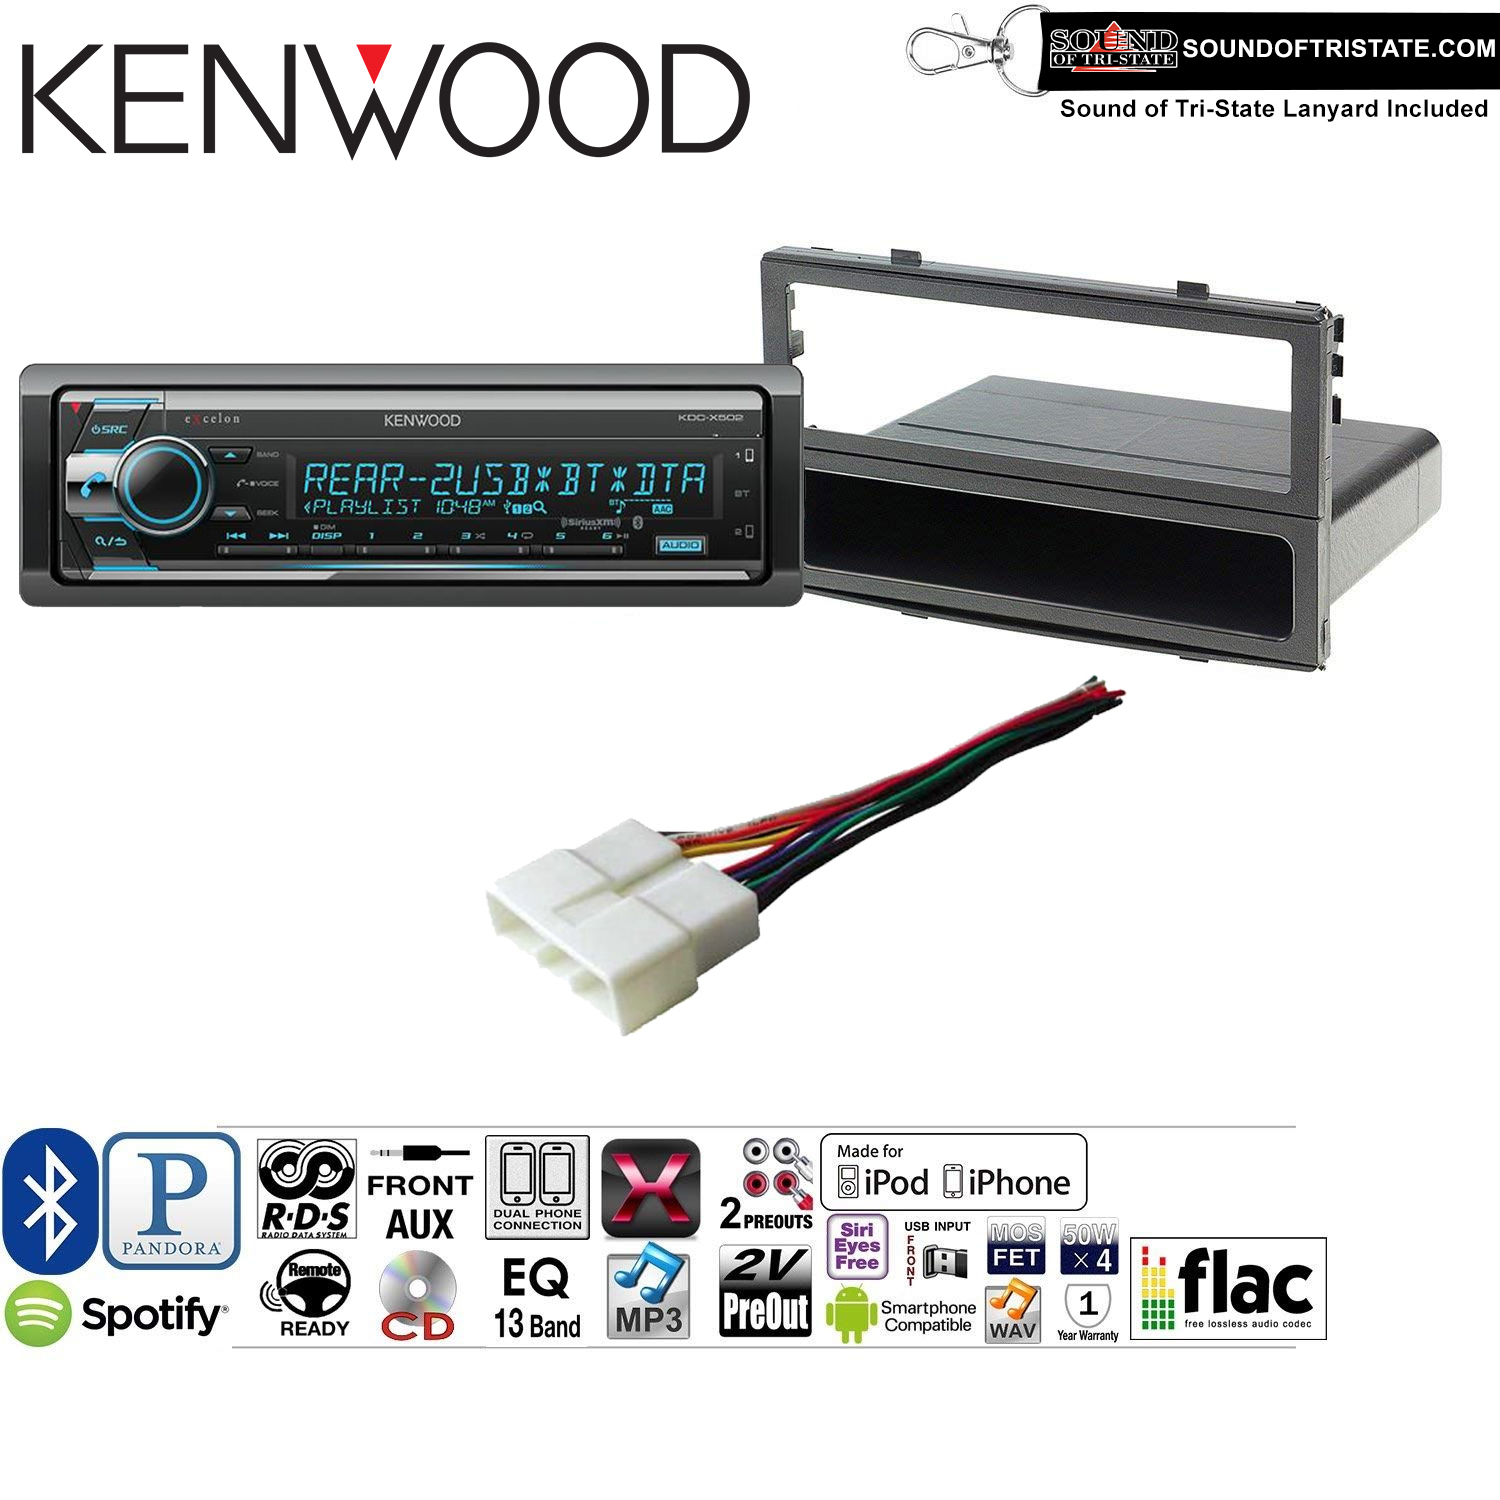 Kenwood KDCX502 Double Din Radio Install Kit with Bluetooth, CD Player, USB/AUX Fits 1990-1997 Honda Accord, 1990-2001 Acura Integra and a SOTS lanyard included